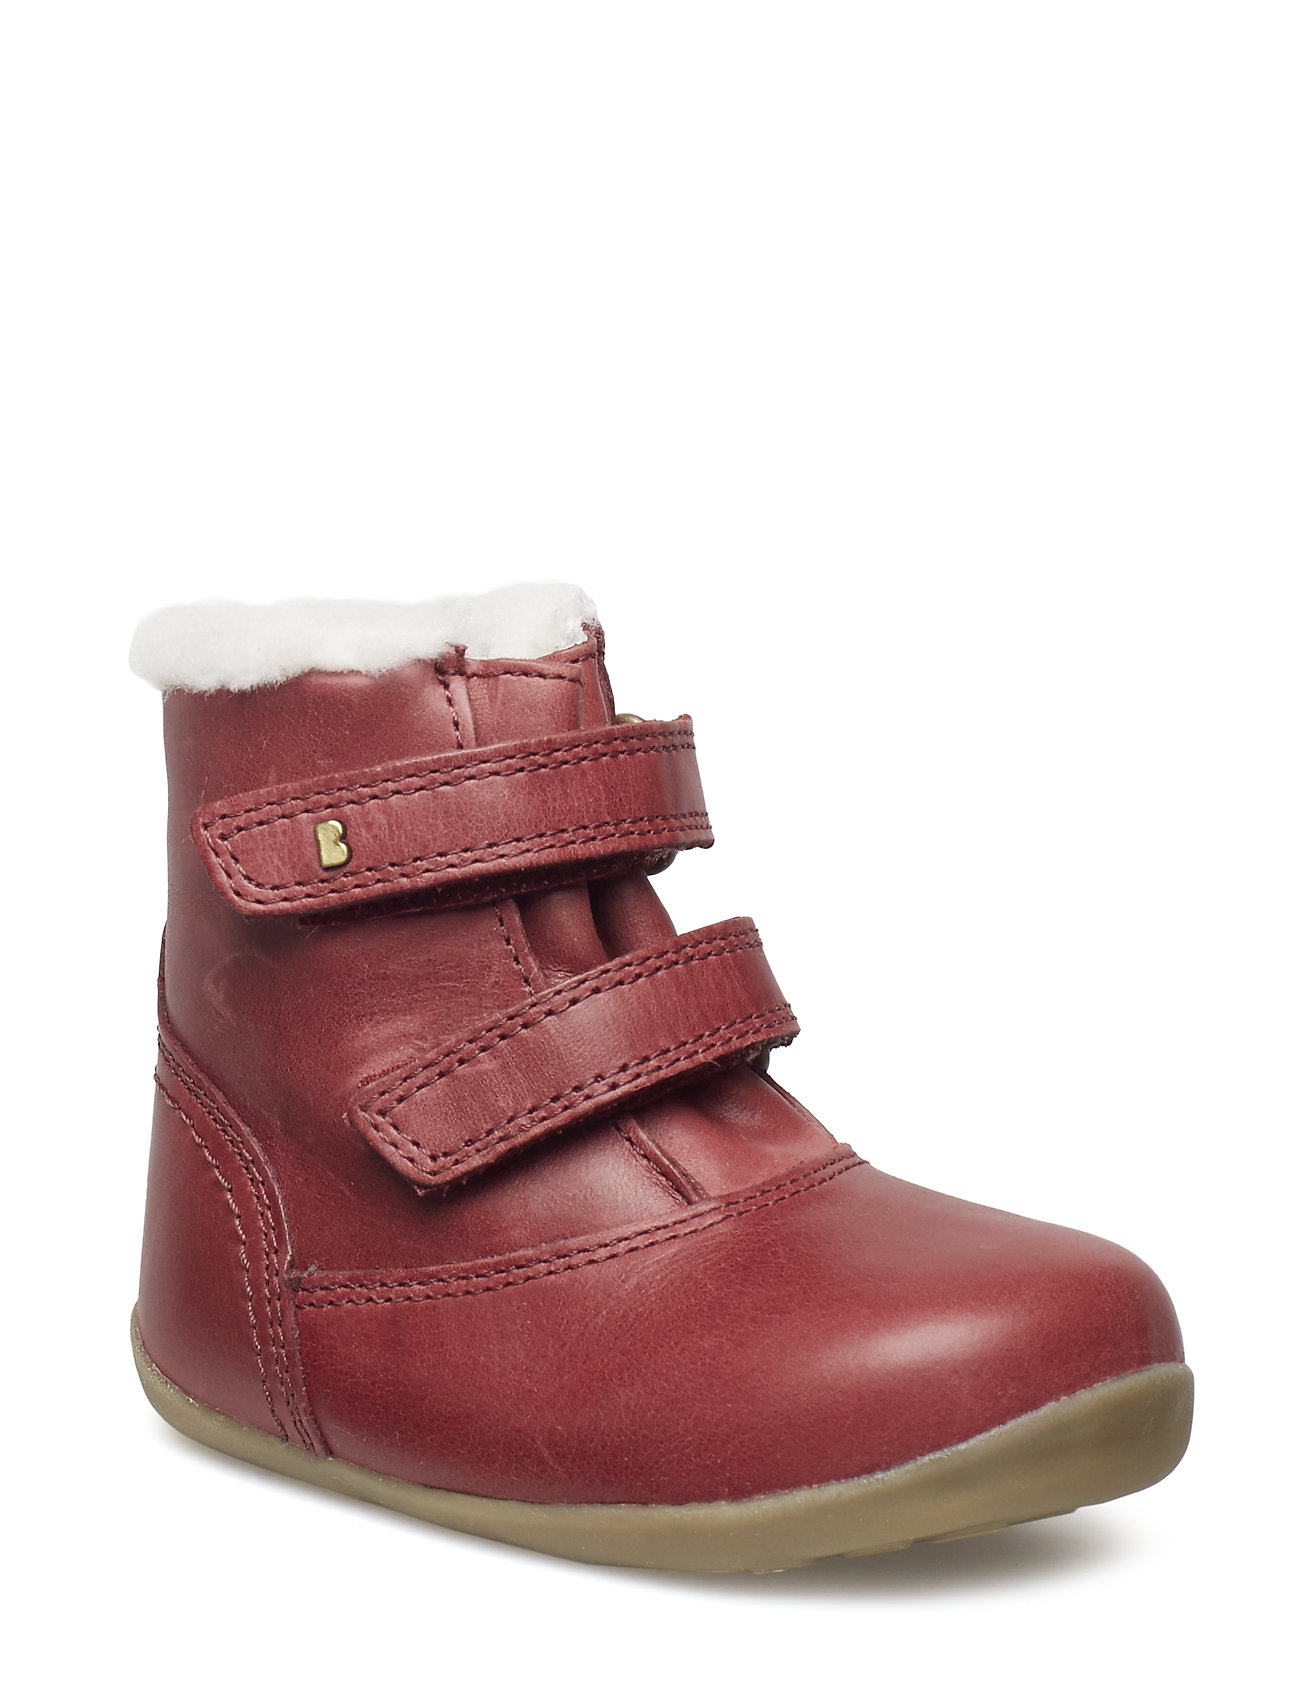 Bobux New Zealand Bobux Step up Aspen Boot